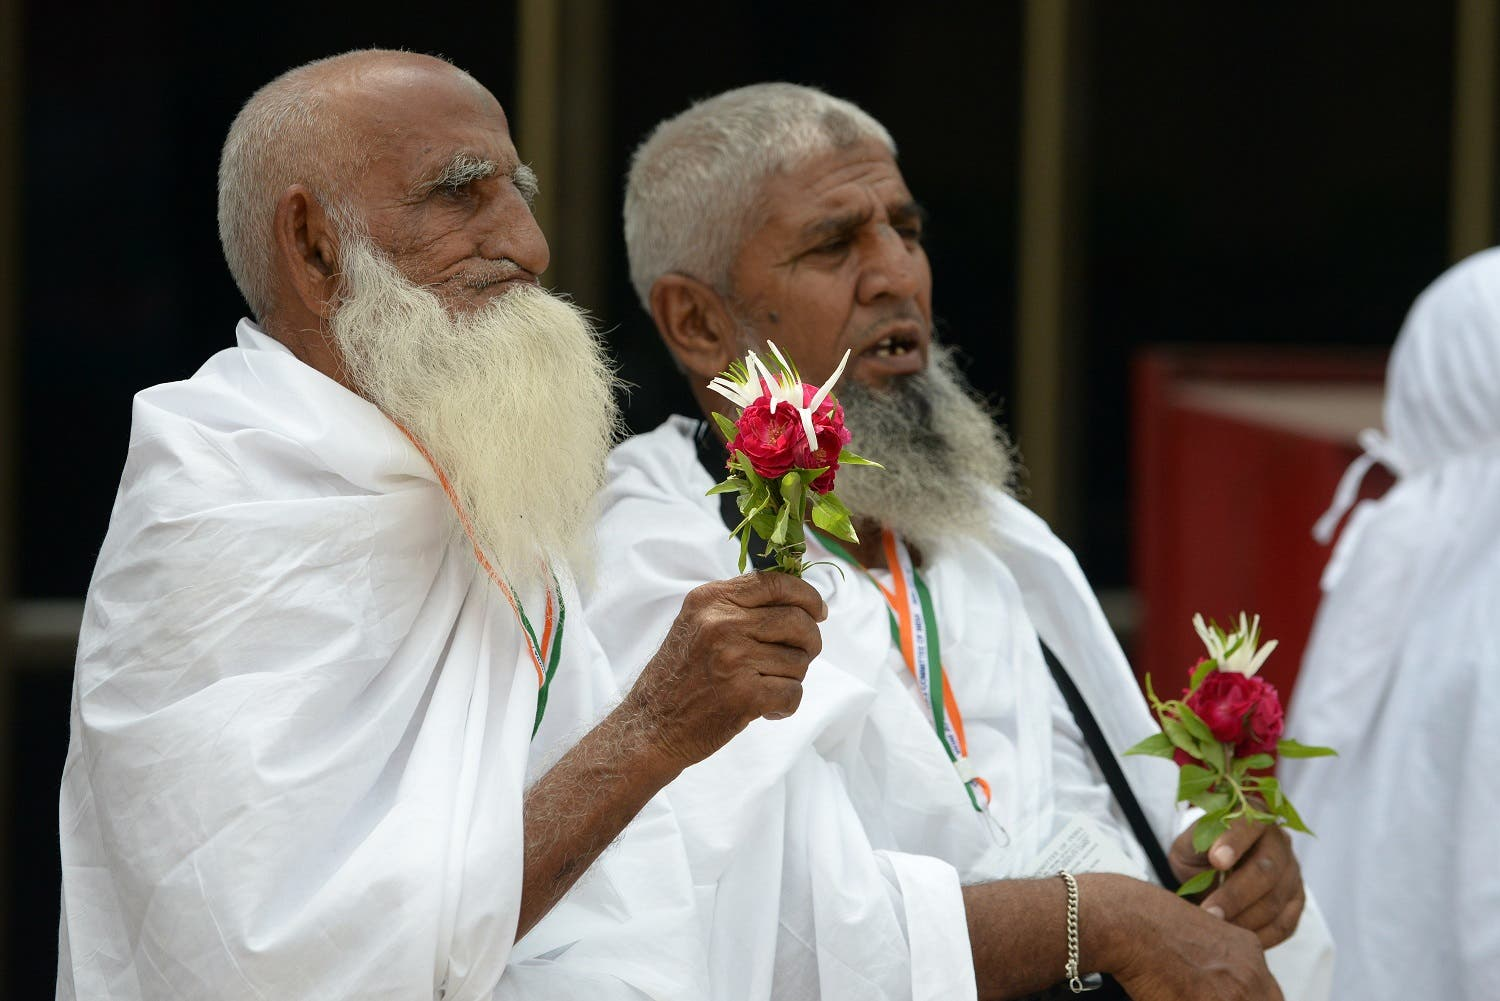 Indian pilgrims prior to departure to Mecca for Hajj at airport in Ahmedabad on September 2, 2015. (AFP)